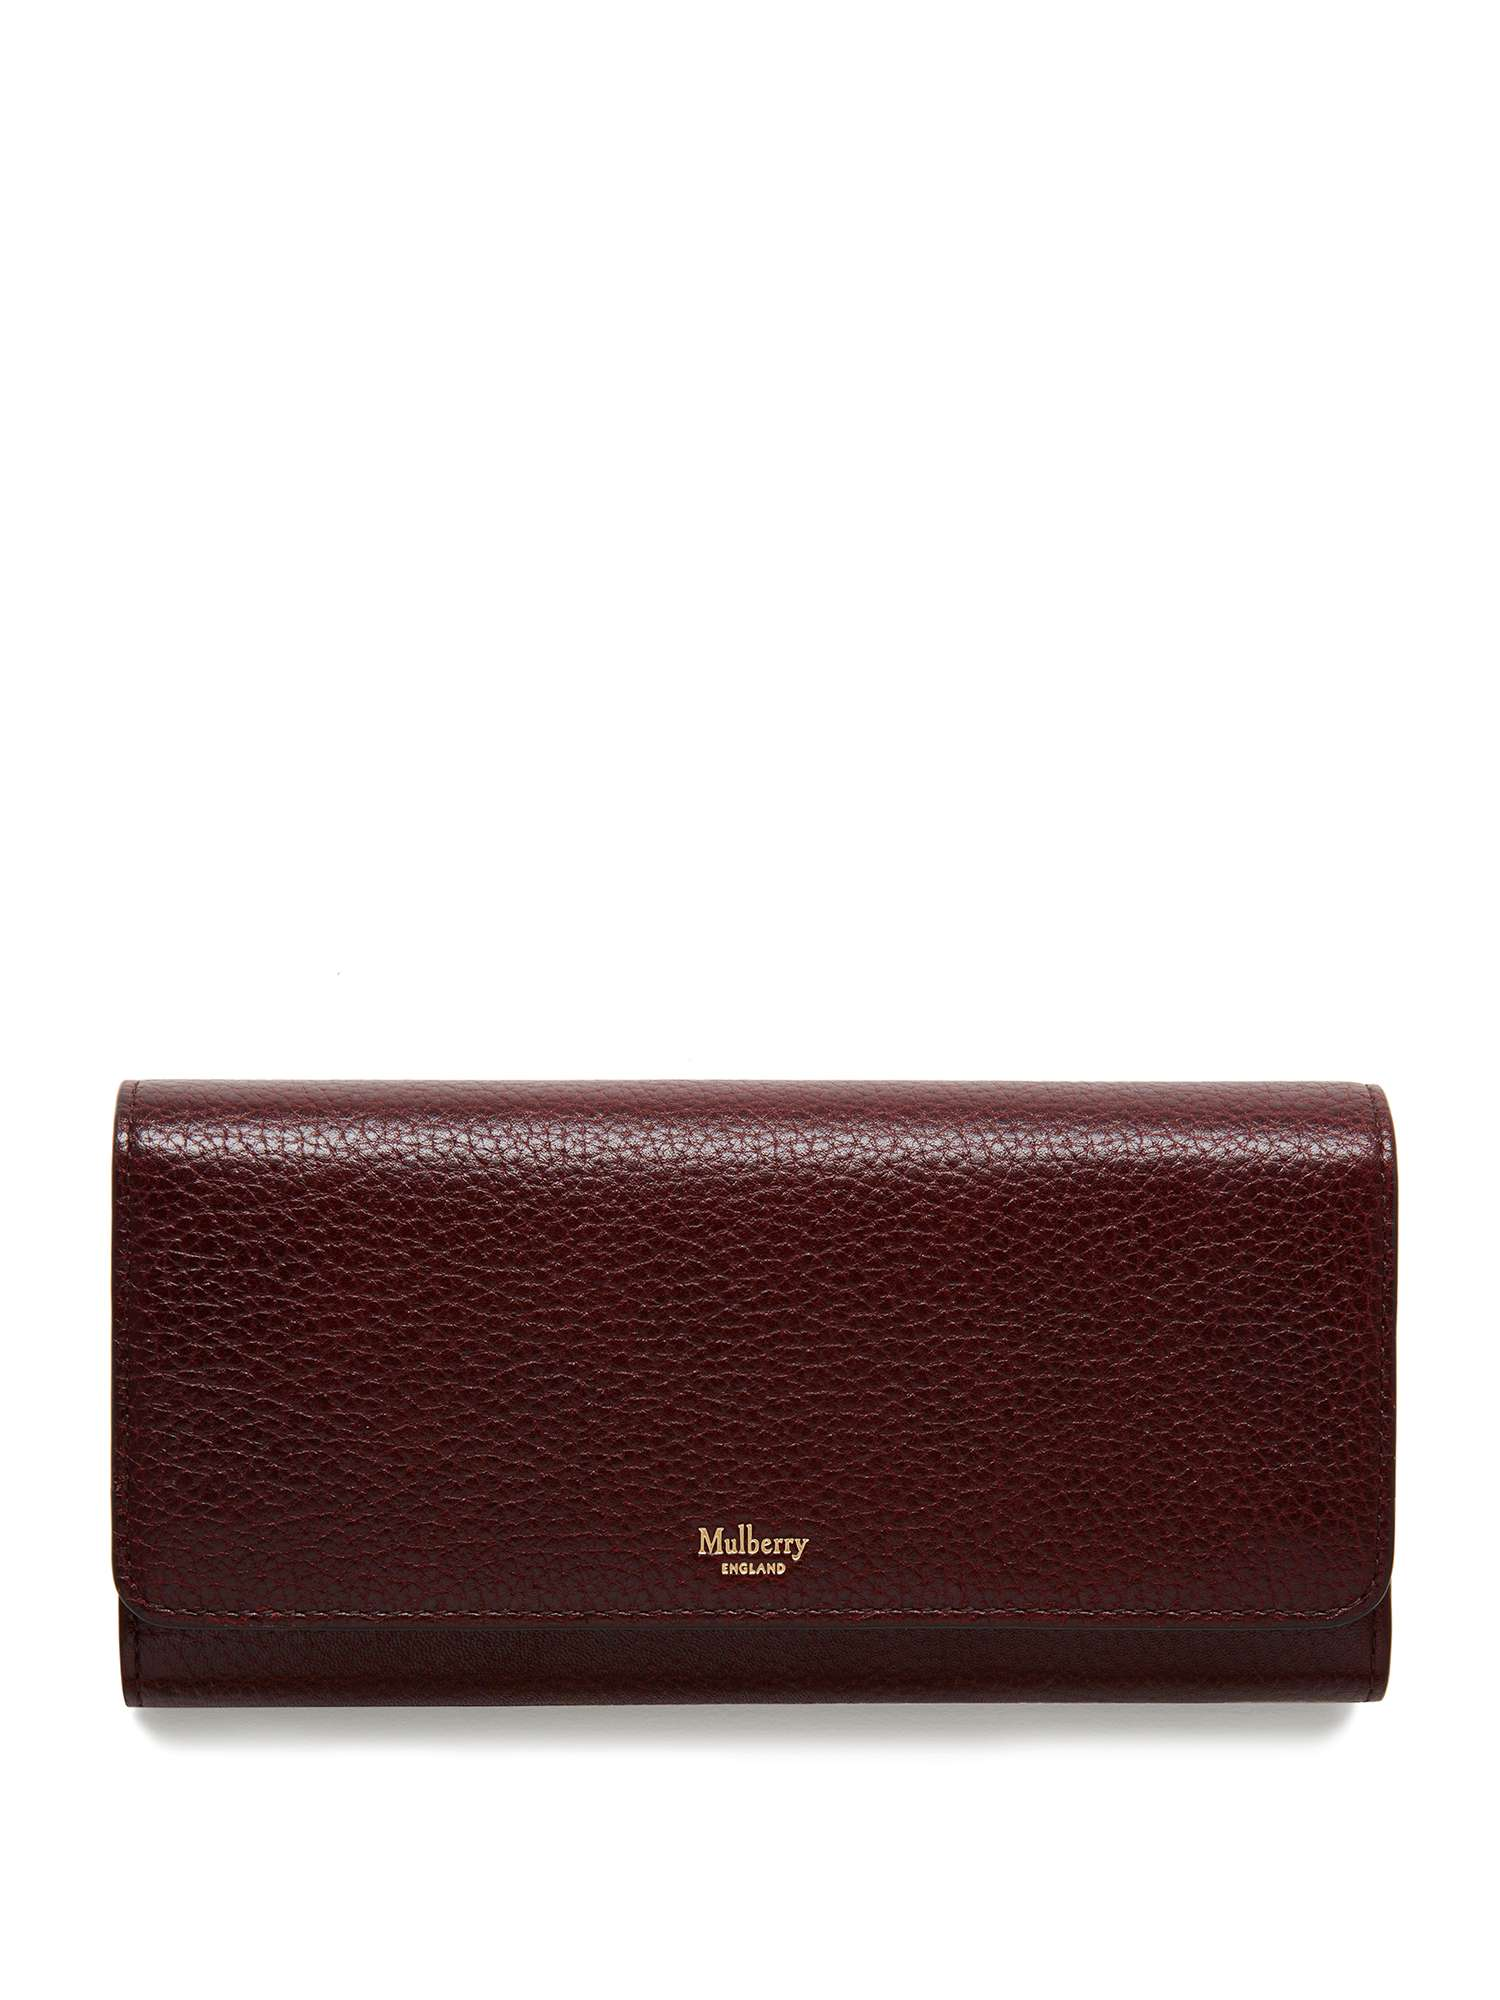 3651b64fbab Mulberry Purses   Shop Bags and Luggage - House of Fraser